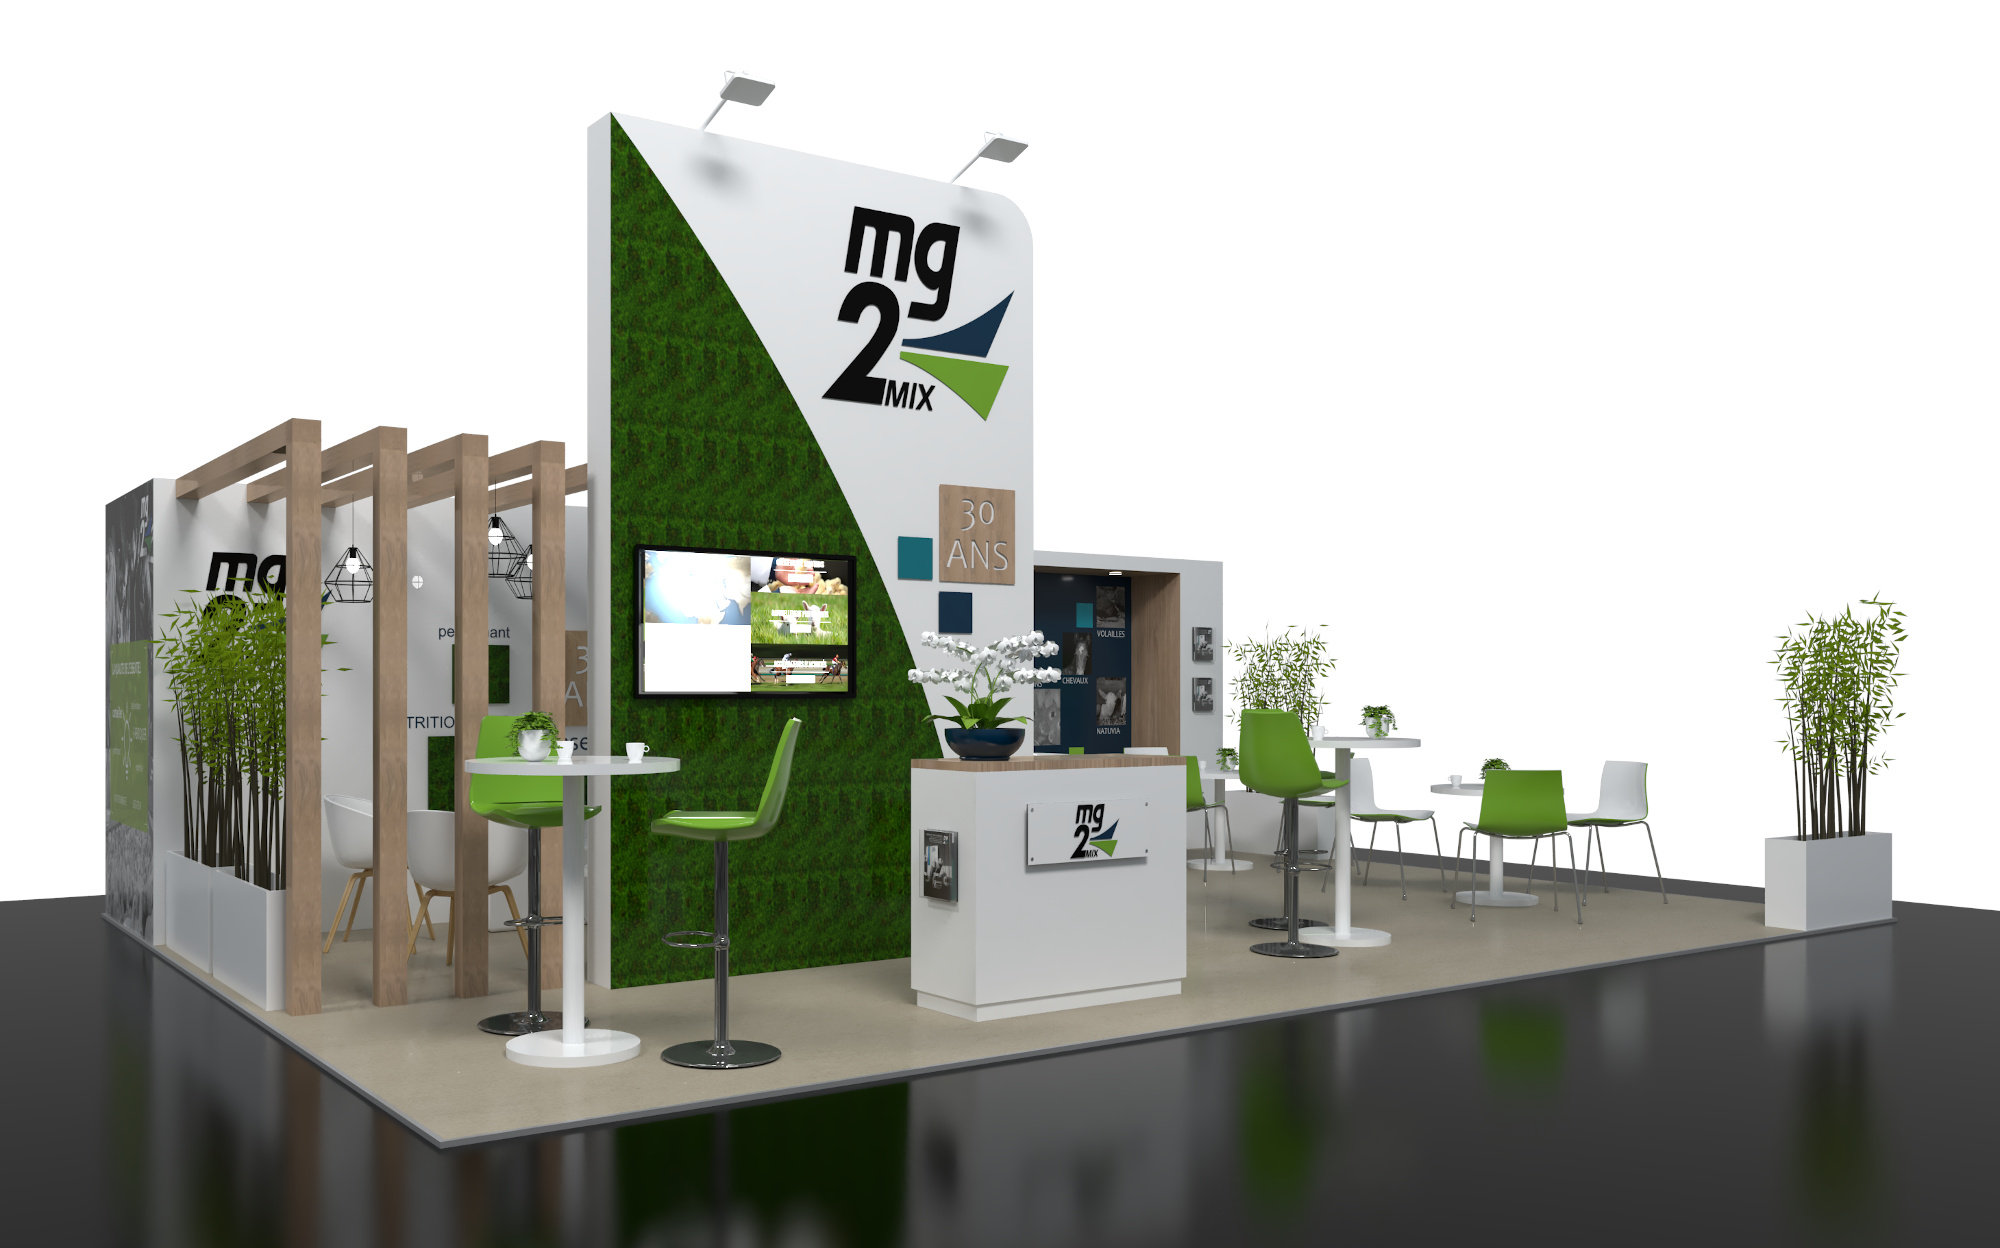 Stand BK Studio MG2 MIX